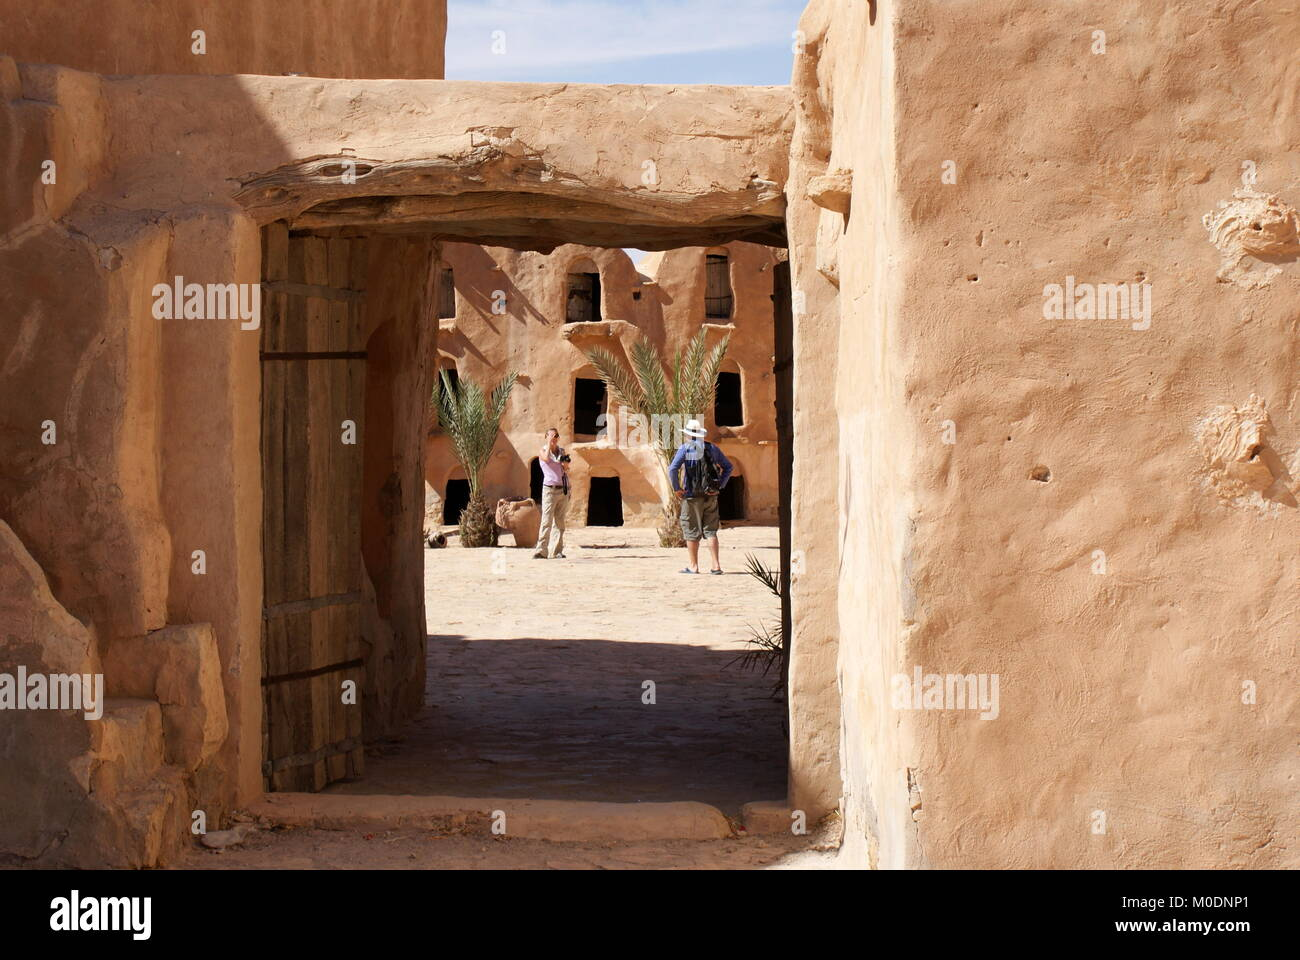 View through doorway to Ksar Ouled Soltane, fortified granary, Tataouine district, Tunisia Stock Photo